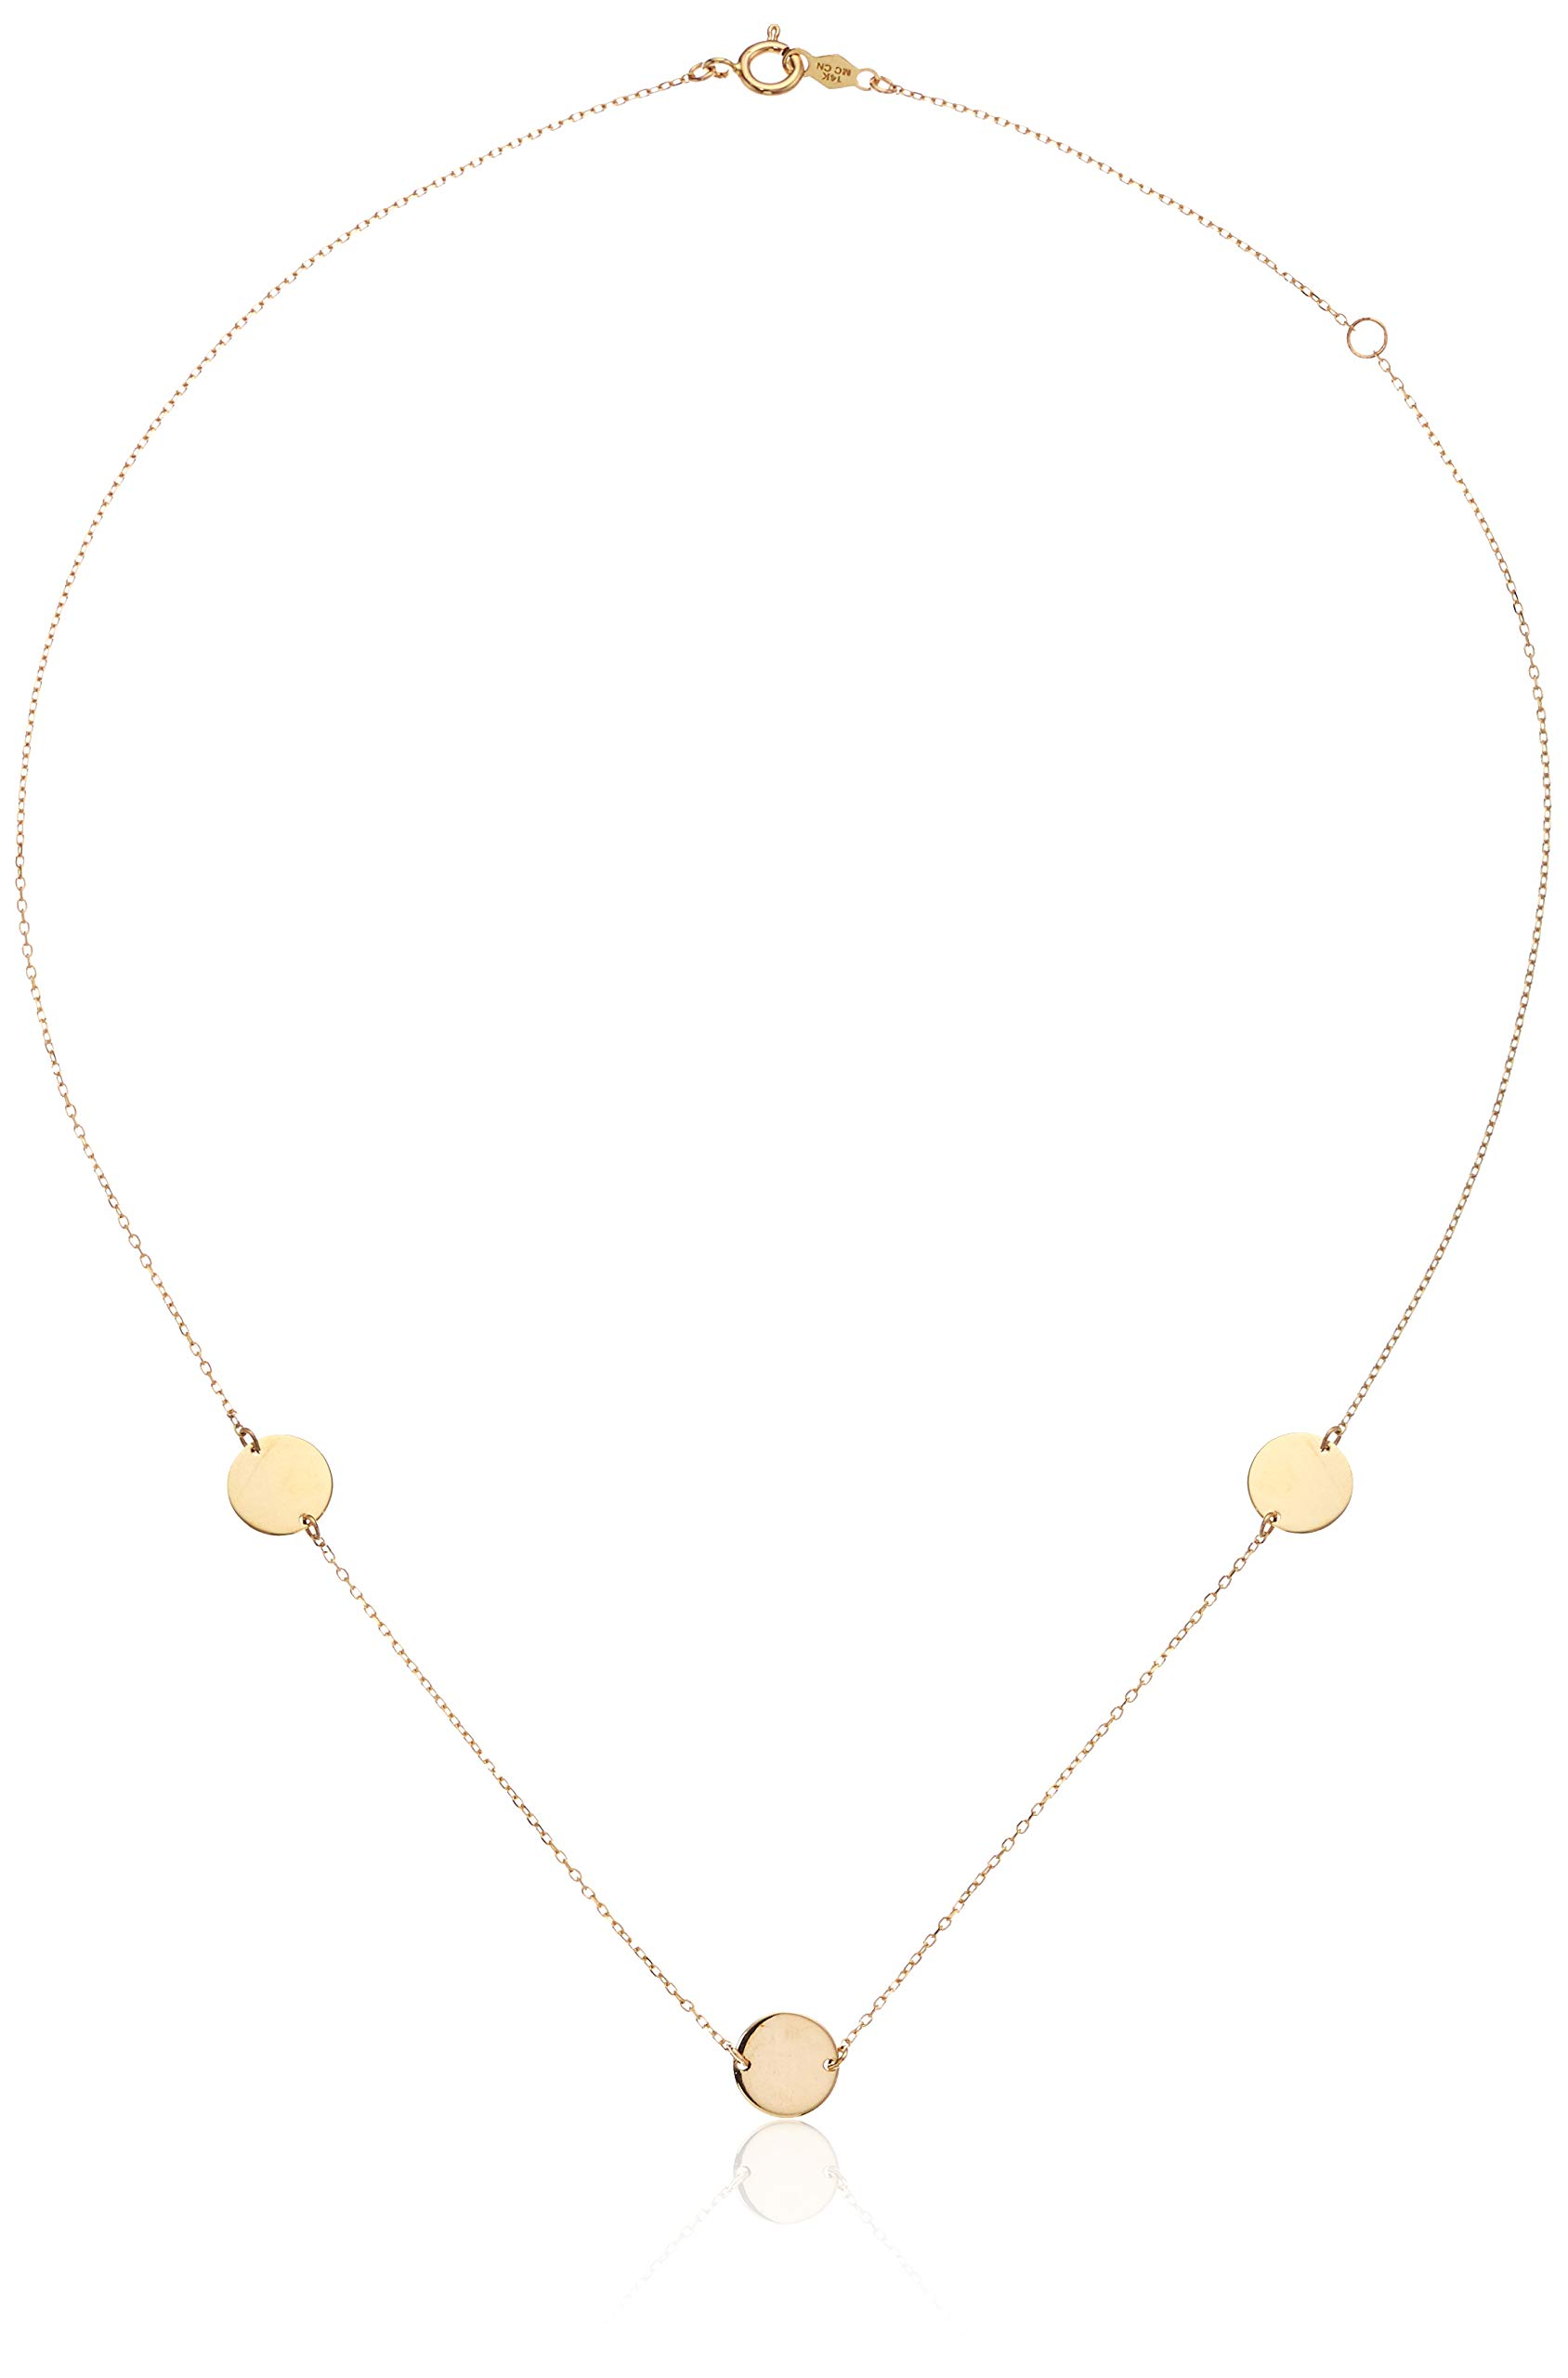 Women's Disc Station Necklace In 14K Yellow Gold, One Size by Parade of Jewels (Image #1)